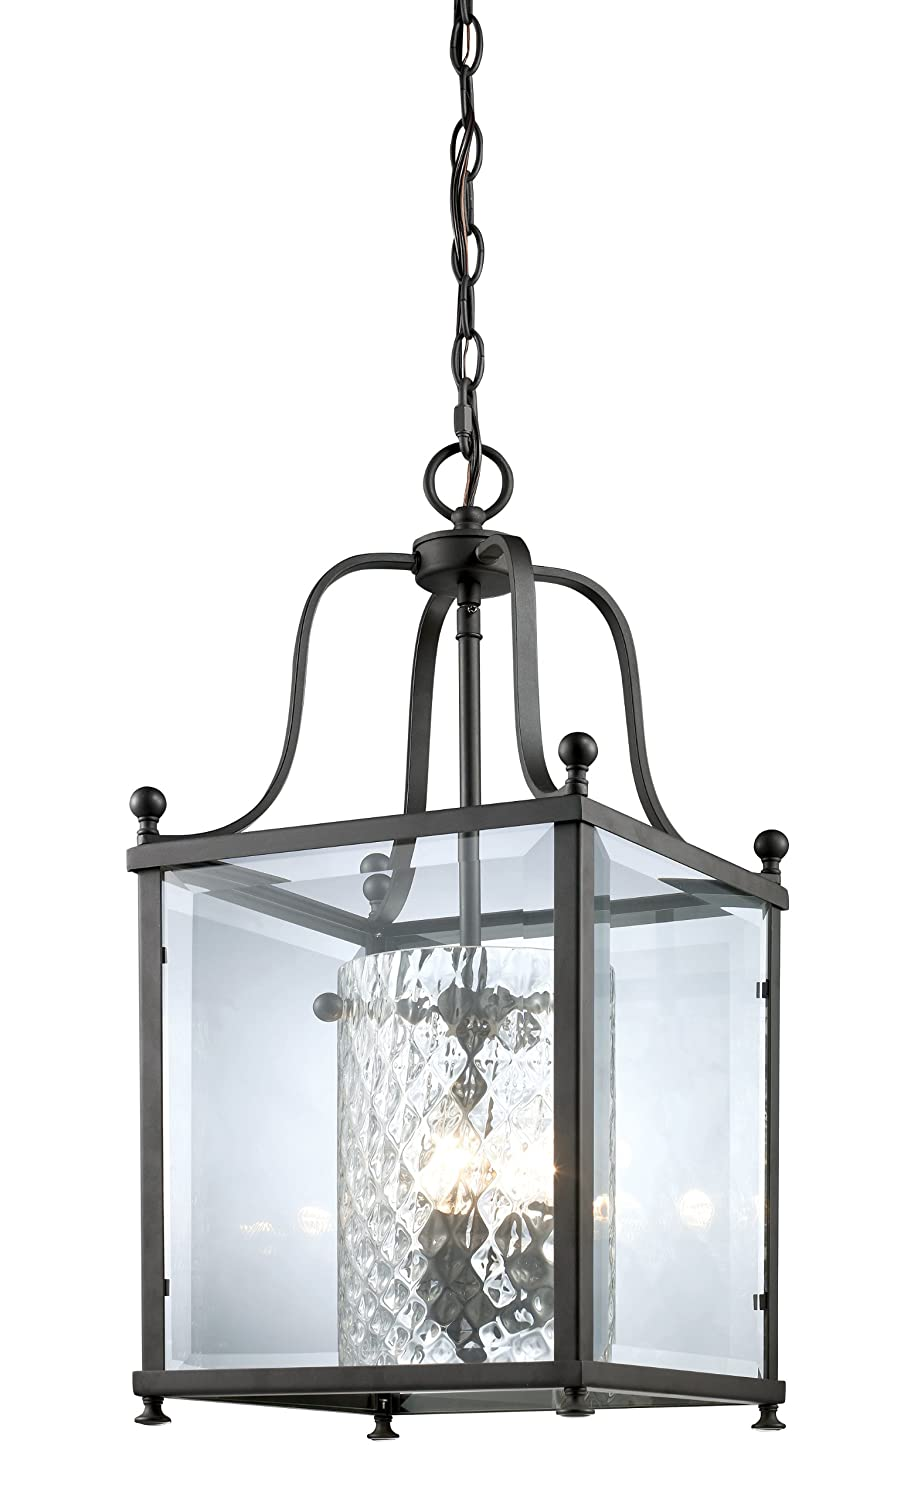 Z lite 177 3m fairview 3 light pendant metal frame bronze finish and clear beveled outside glass ceiling pendant fixtures amazon com